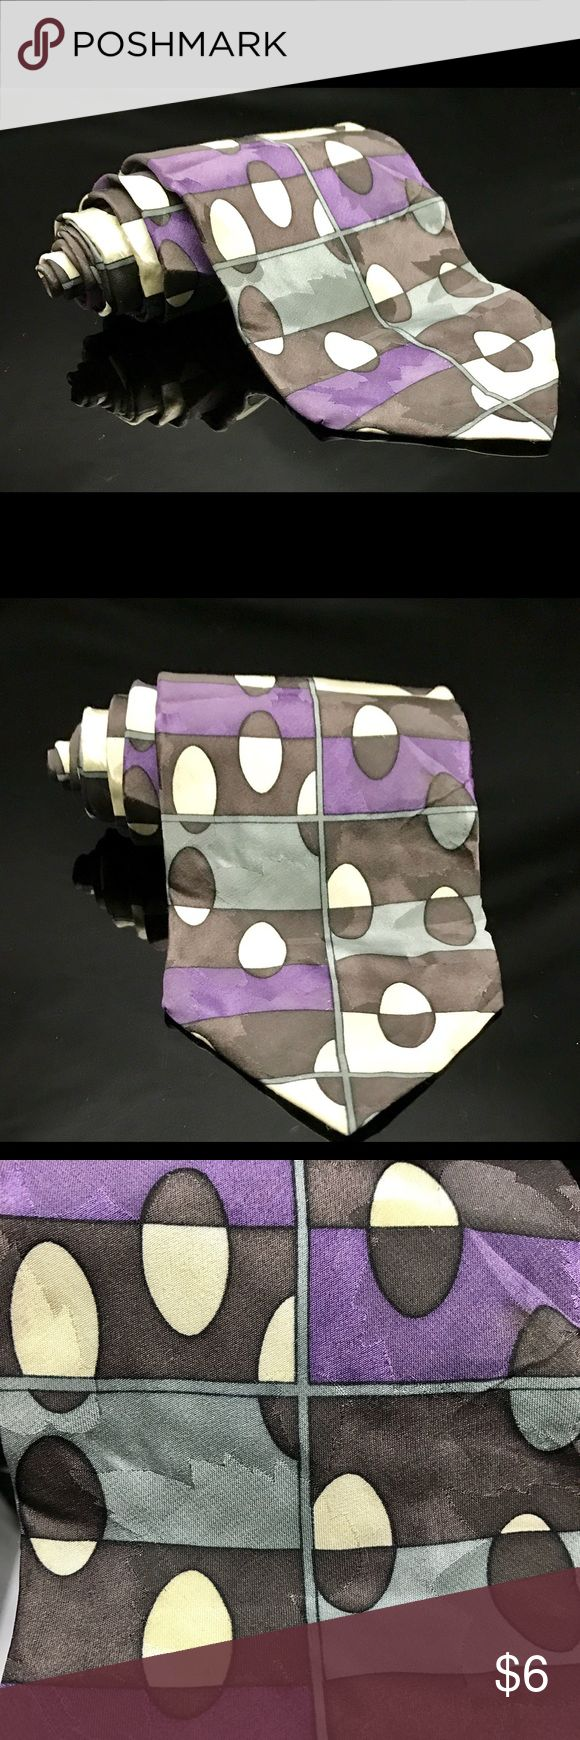 Luciano Gatti-Platinum Purple tie You Are Buying A Luciano Gatti-Platinum Purple Black White 100% silk Italian made tie All ties will be rolled & wrapped inside a box to you.this tie has small stain shown in the pic and dropped the price because of it. From a Pet and Smoke Free Home Accessories Ties